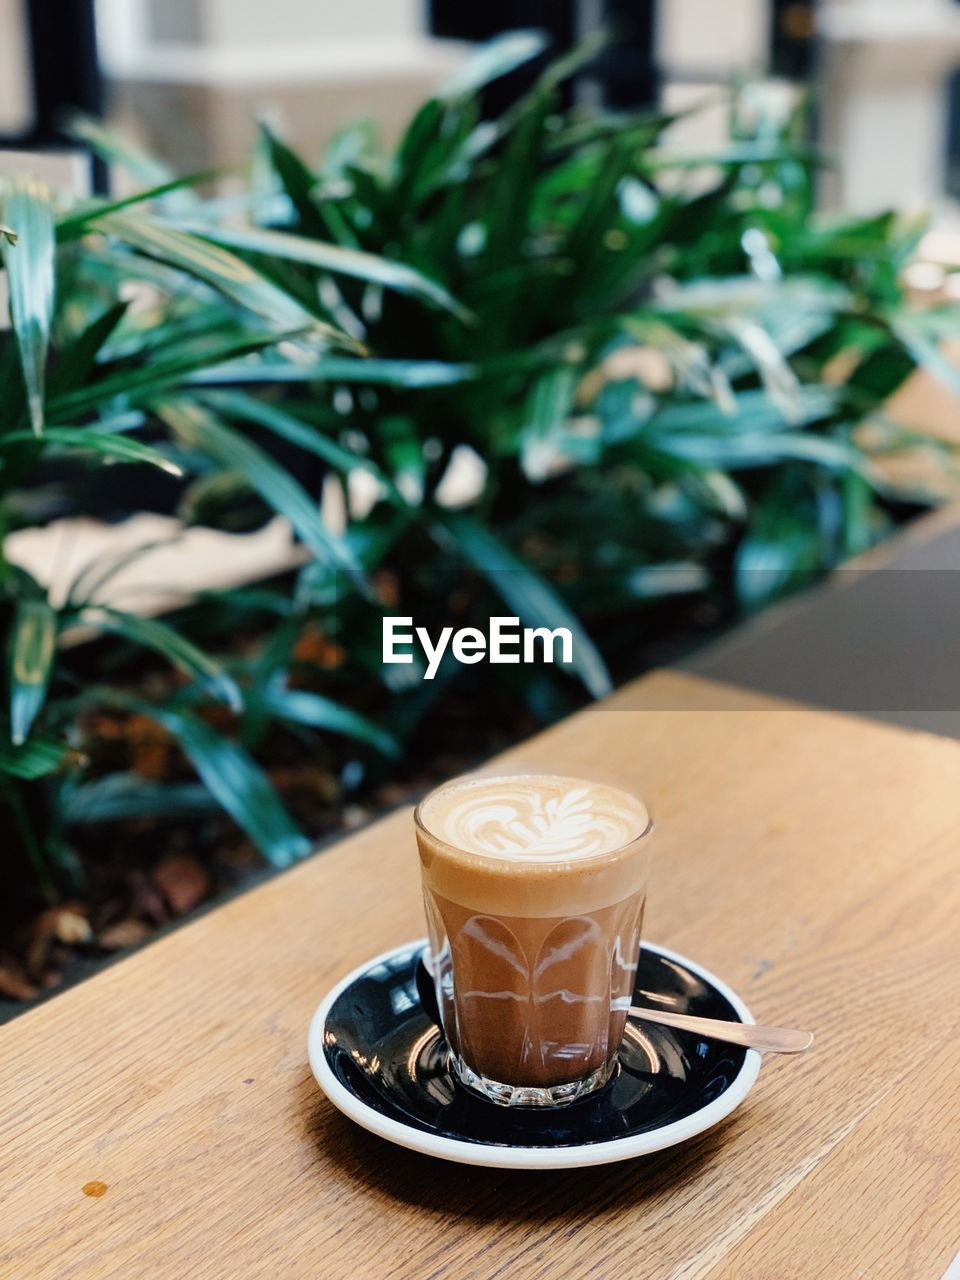 food and drink, table, drink, saucer, coffee - drink, coffee, crockery, refreshment, mug, coffee cup, cup, cafe, freshness, spoon, focus on foreground, eating utensil, hot drink, kitchen utensil, latte, food, no people, frothy drink, glass, coffee shop